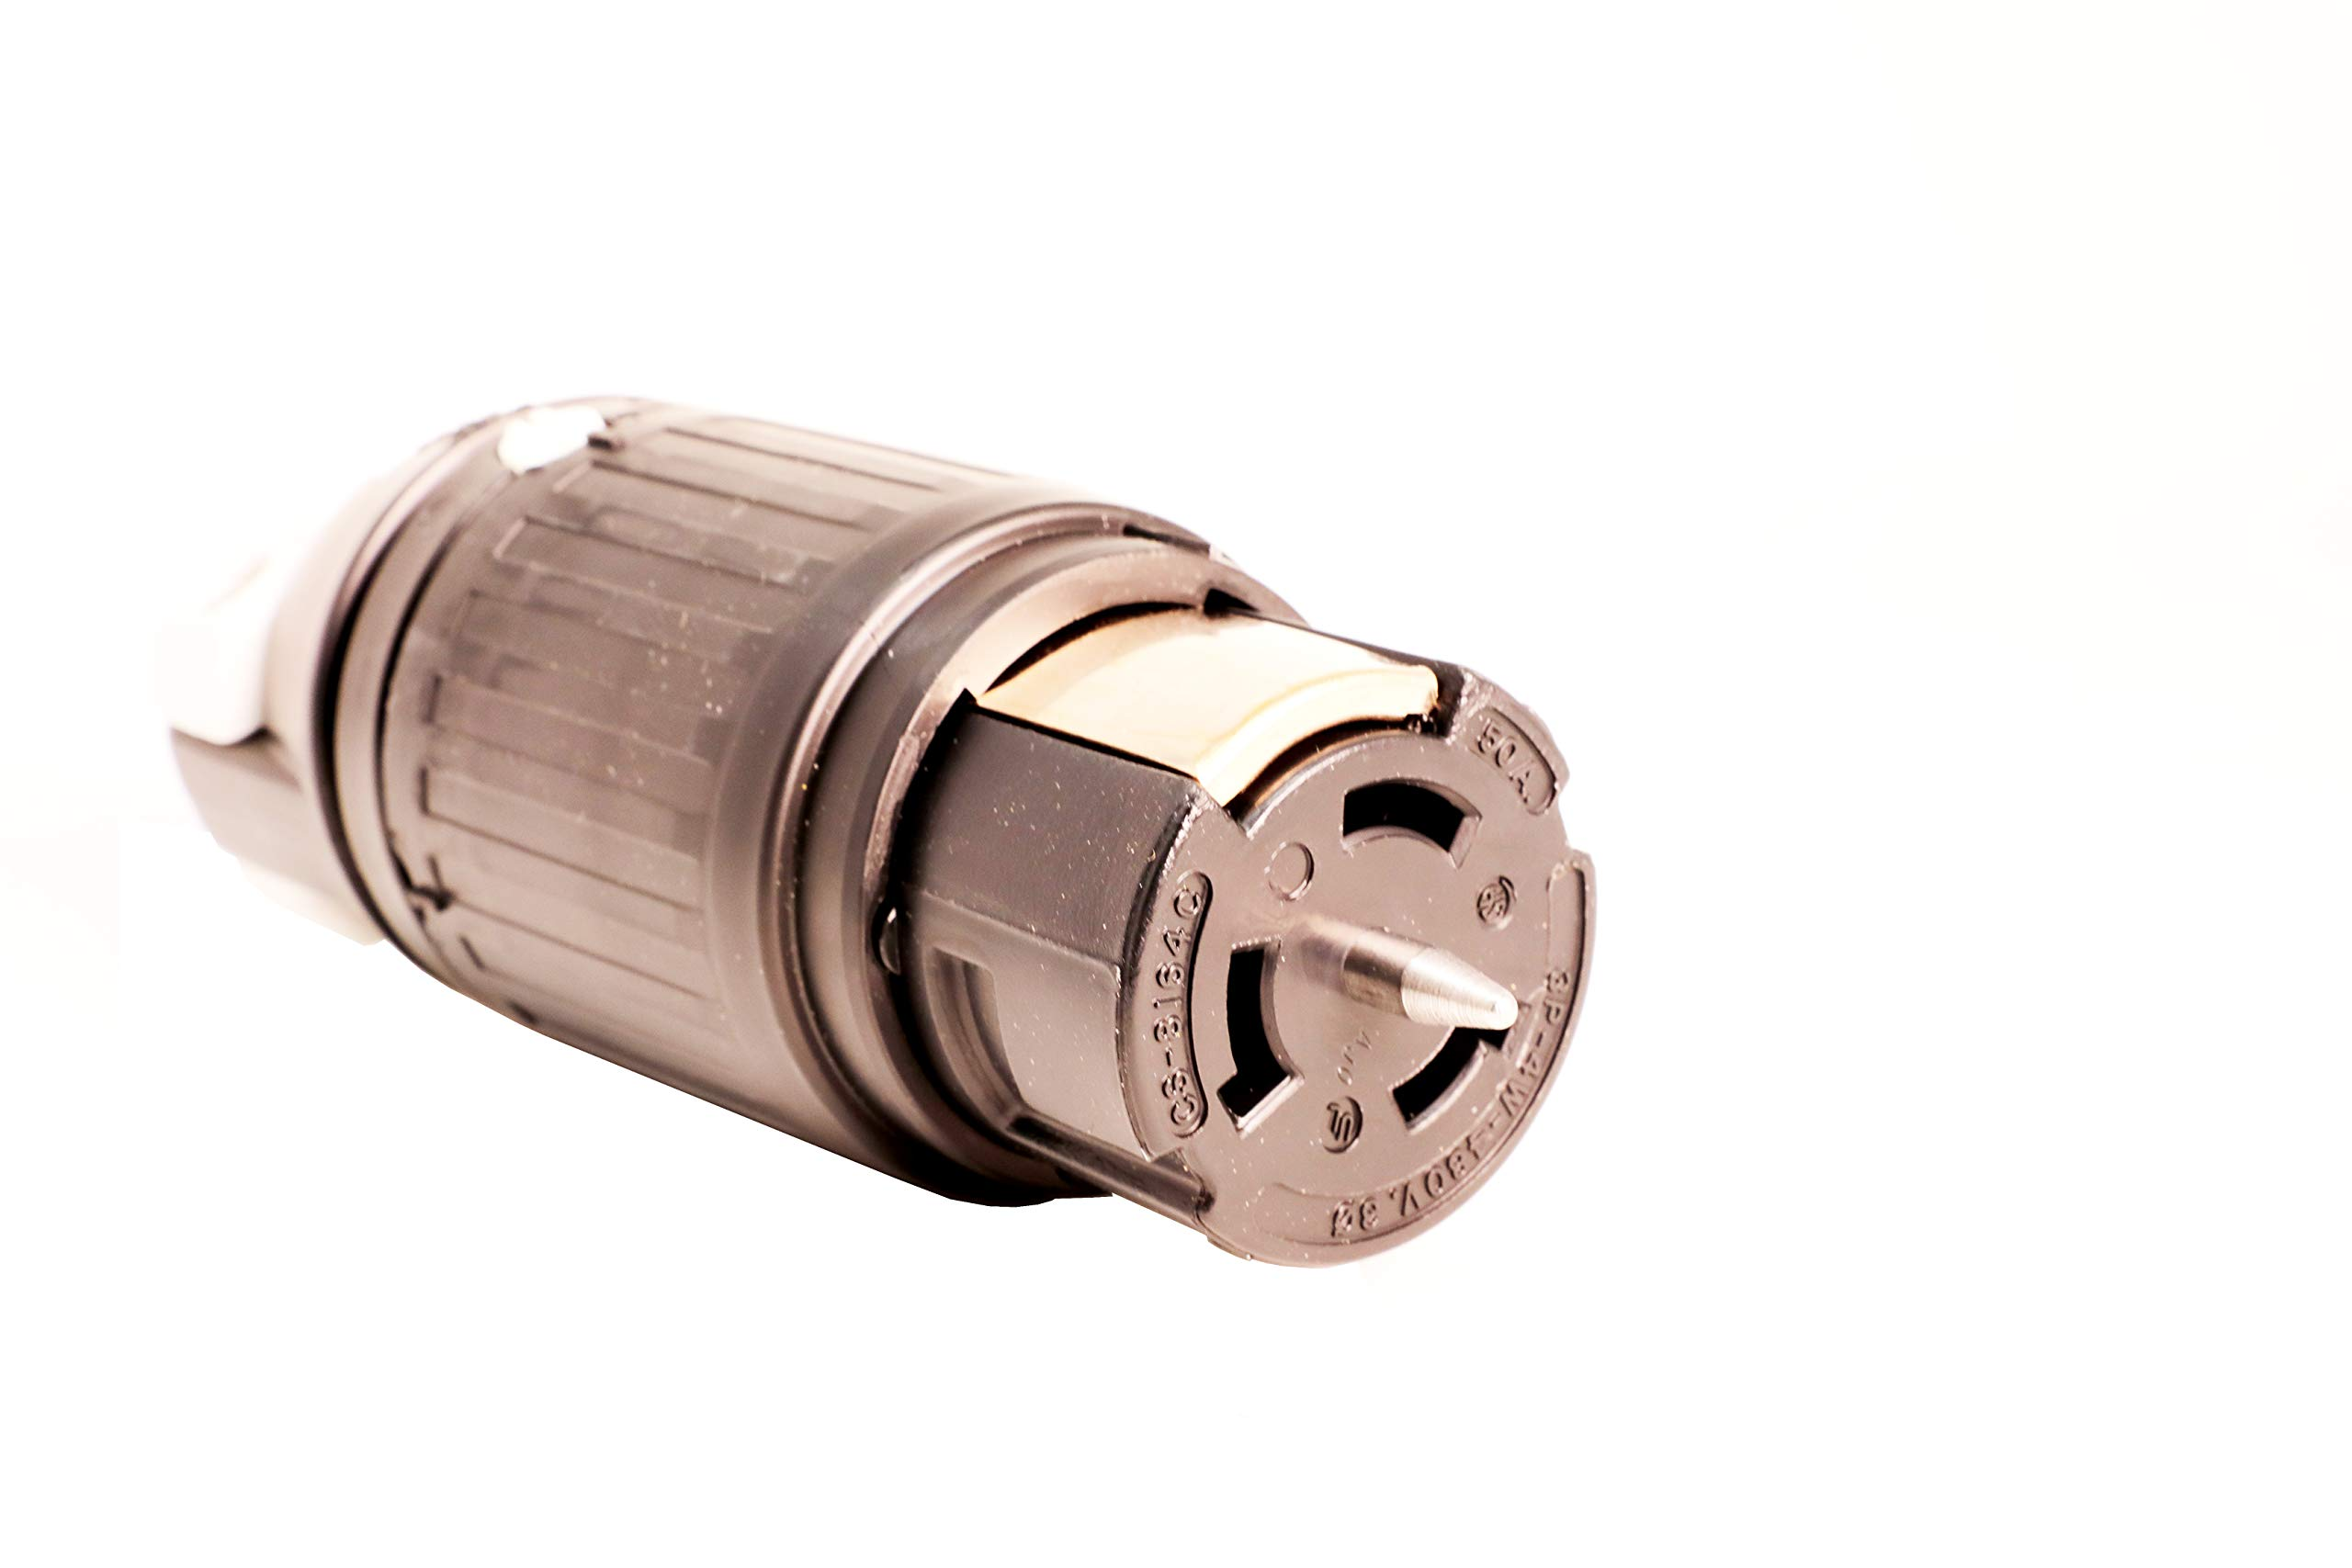 HUBBELL CS8164C AC Connector CA STD 50a 3-Phase 480v Female